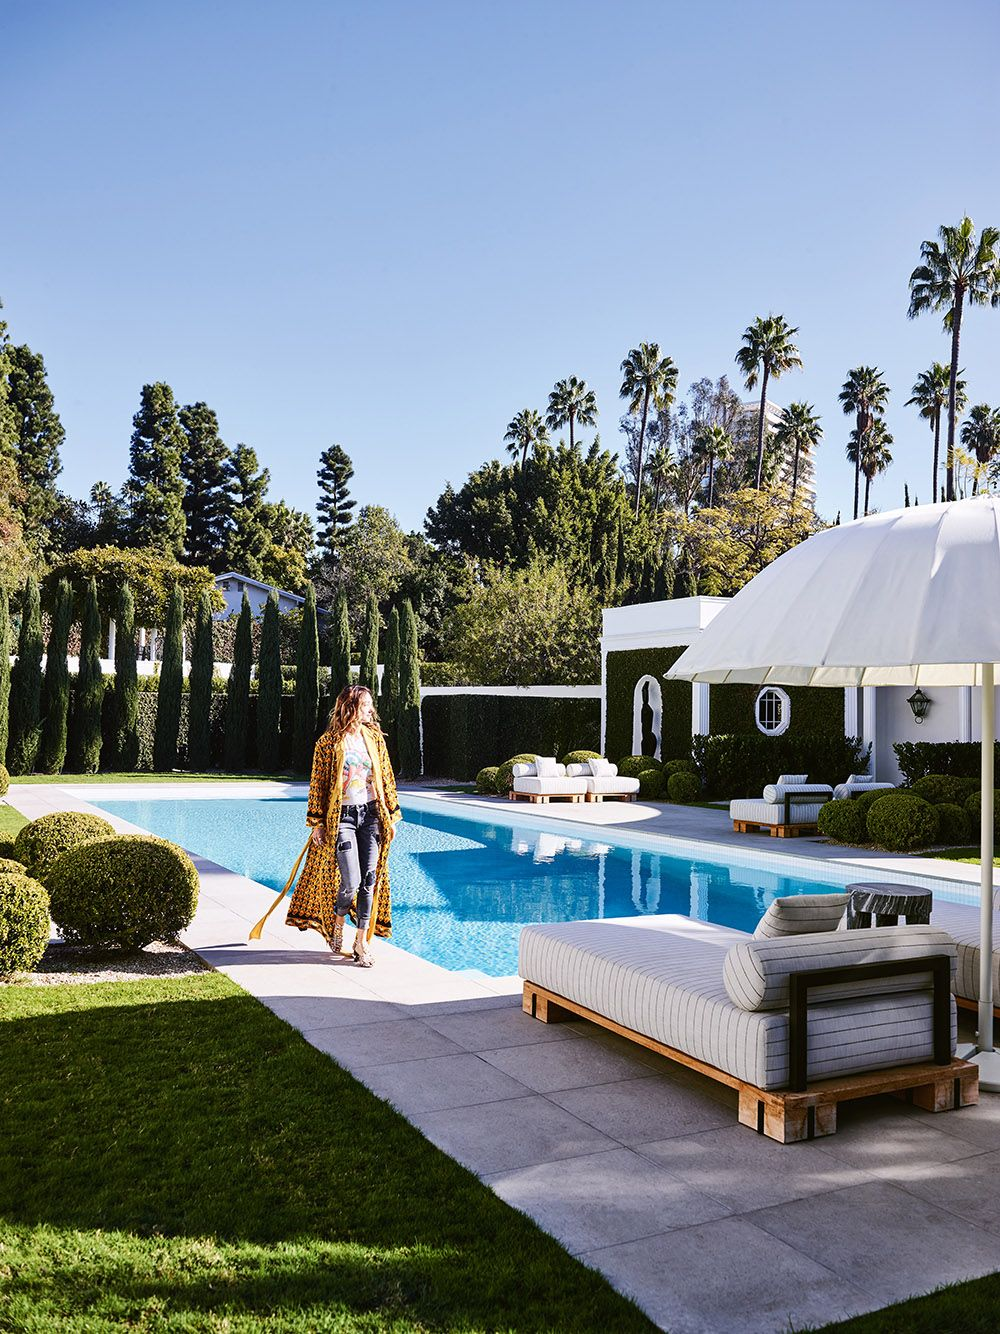 Kelly Wearstler shot at her home in Beverly Hills for the